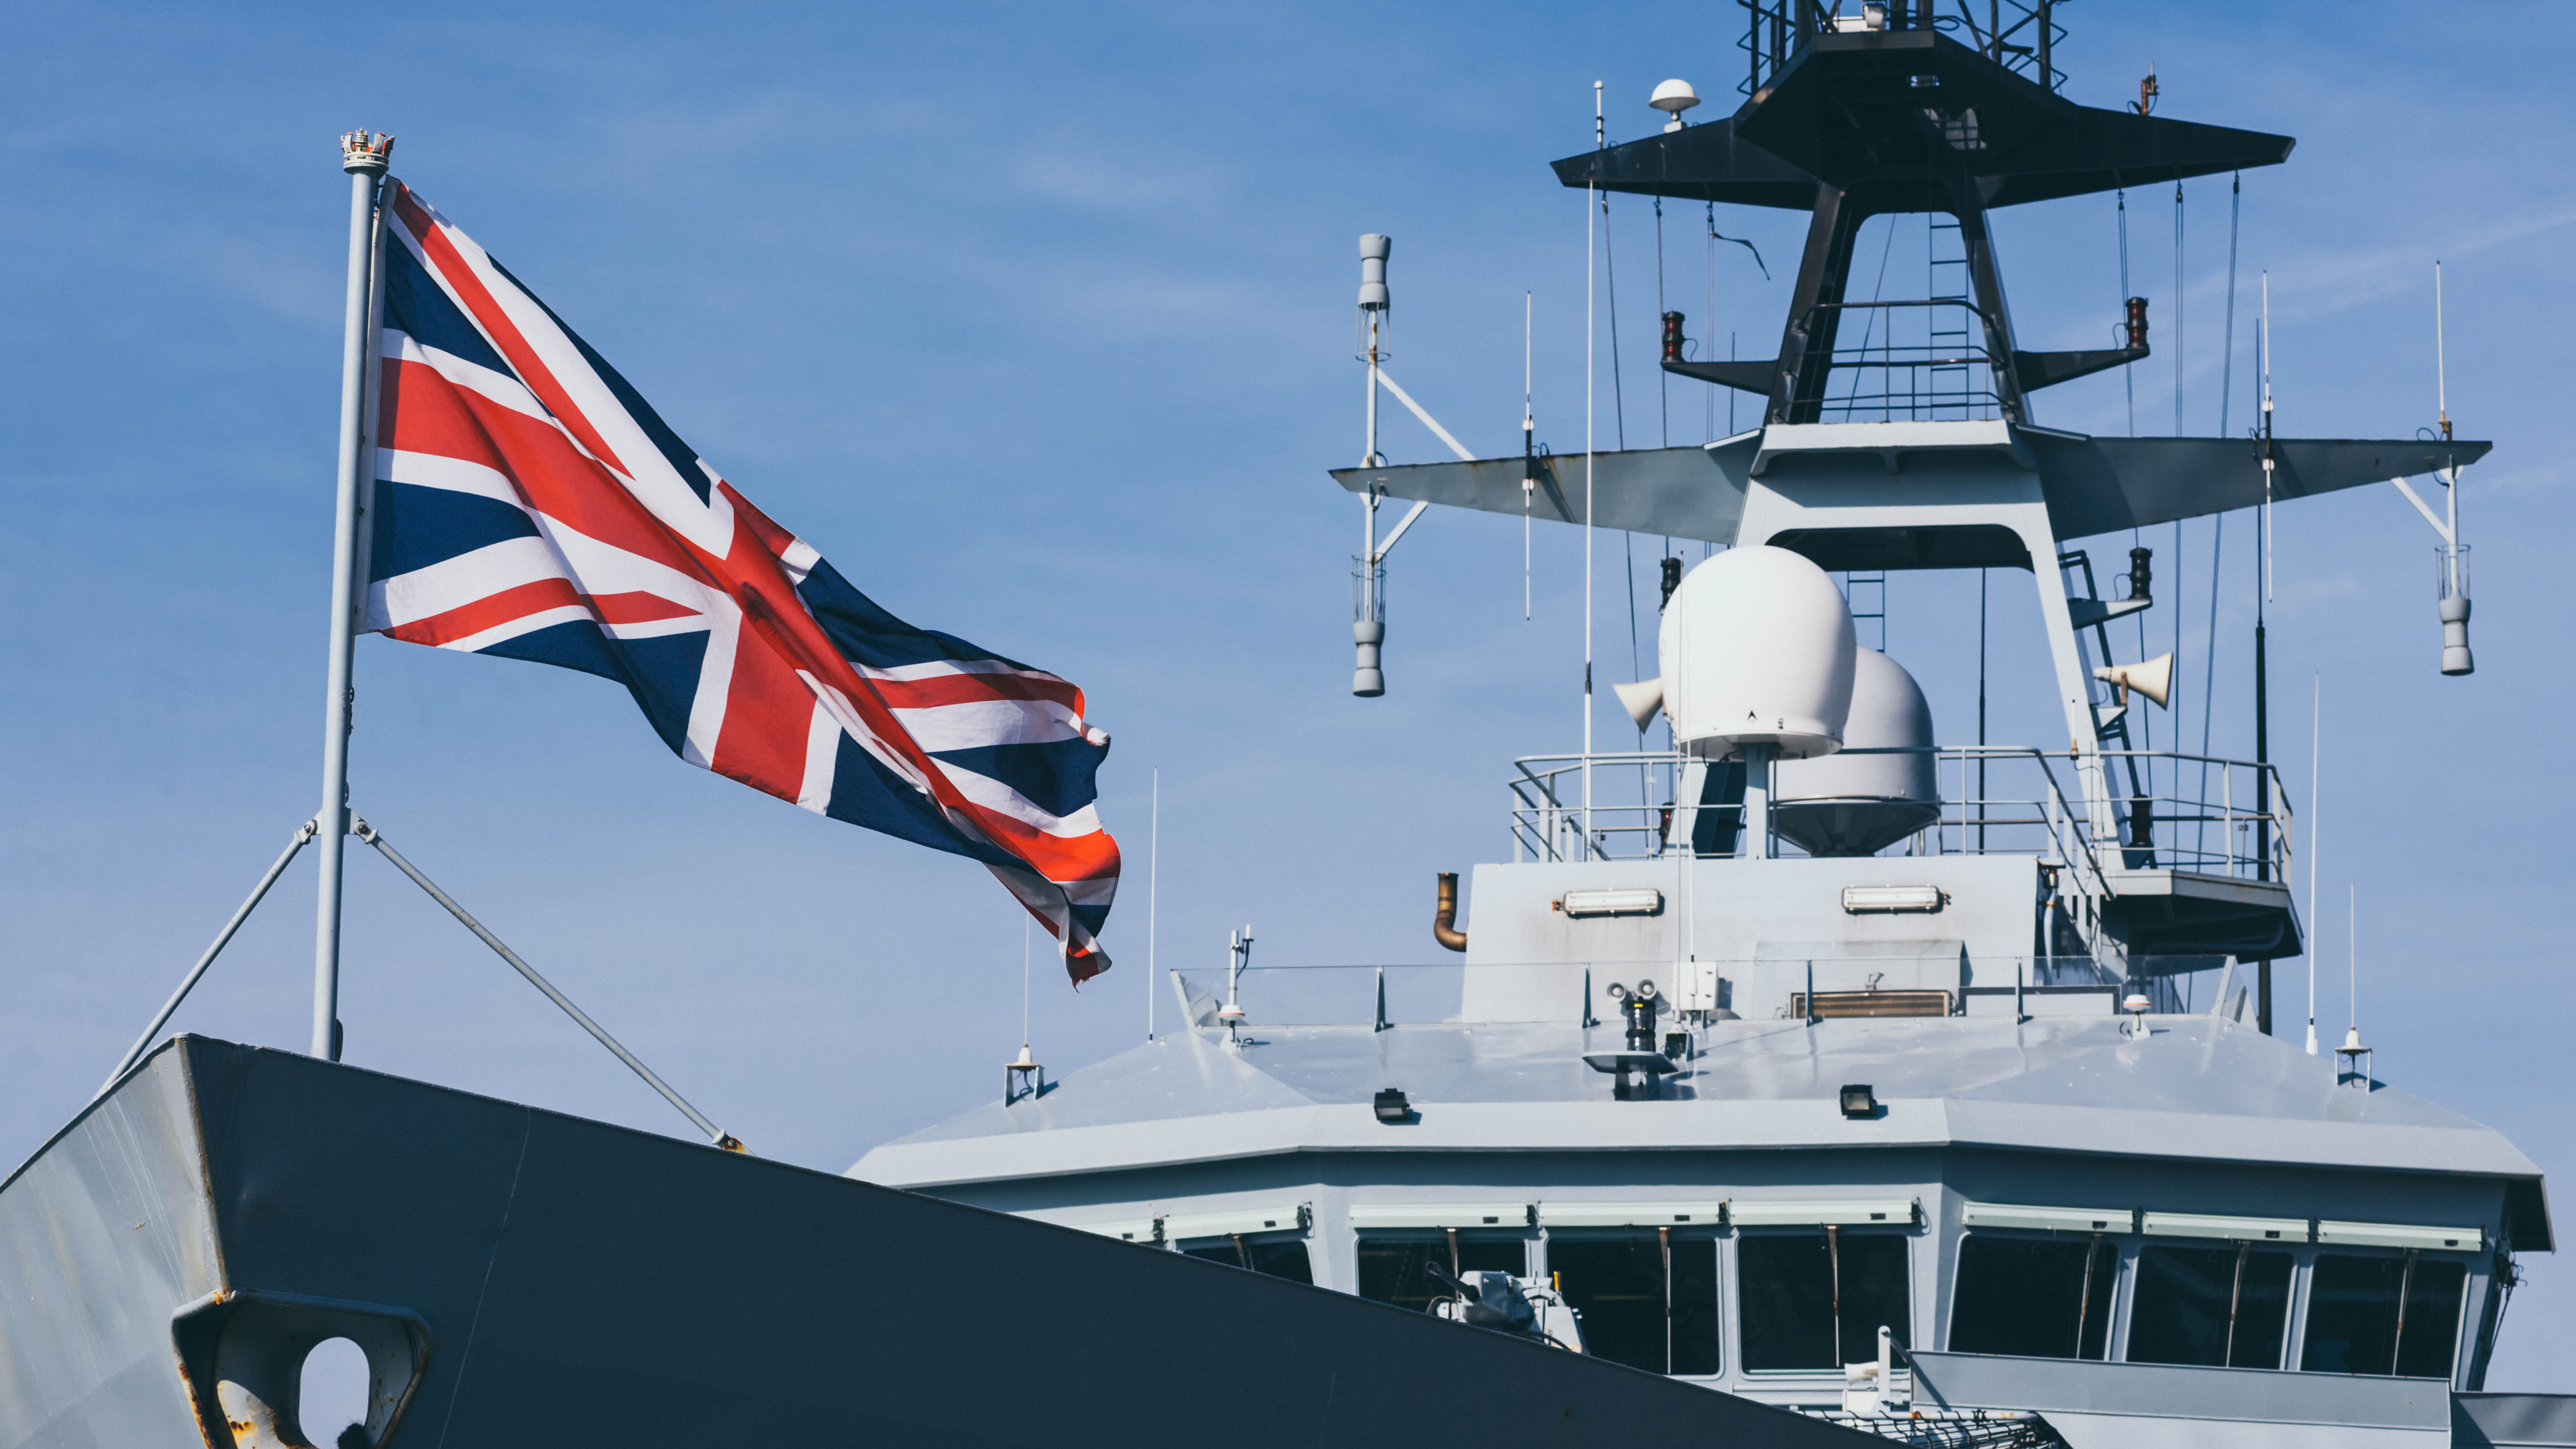 What can construction learn from the Royal Navy